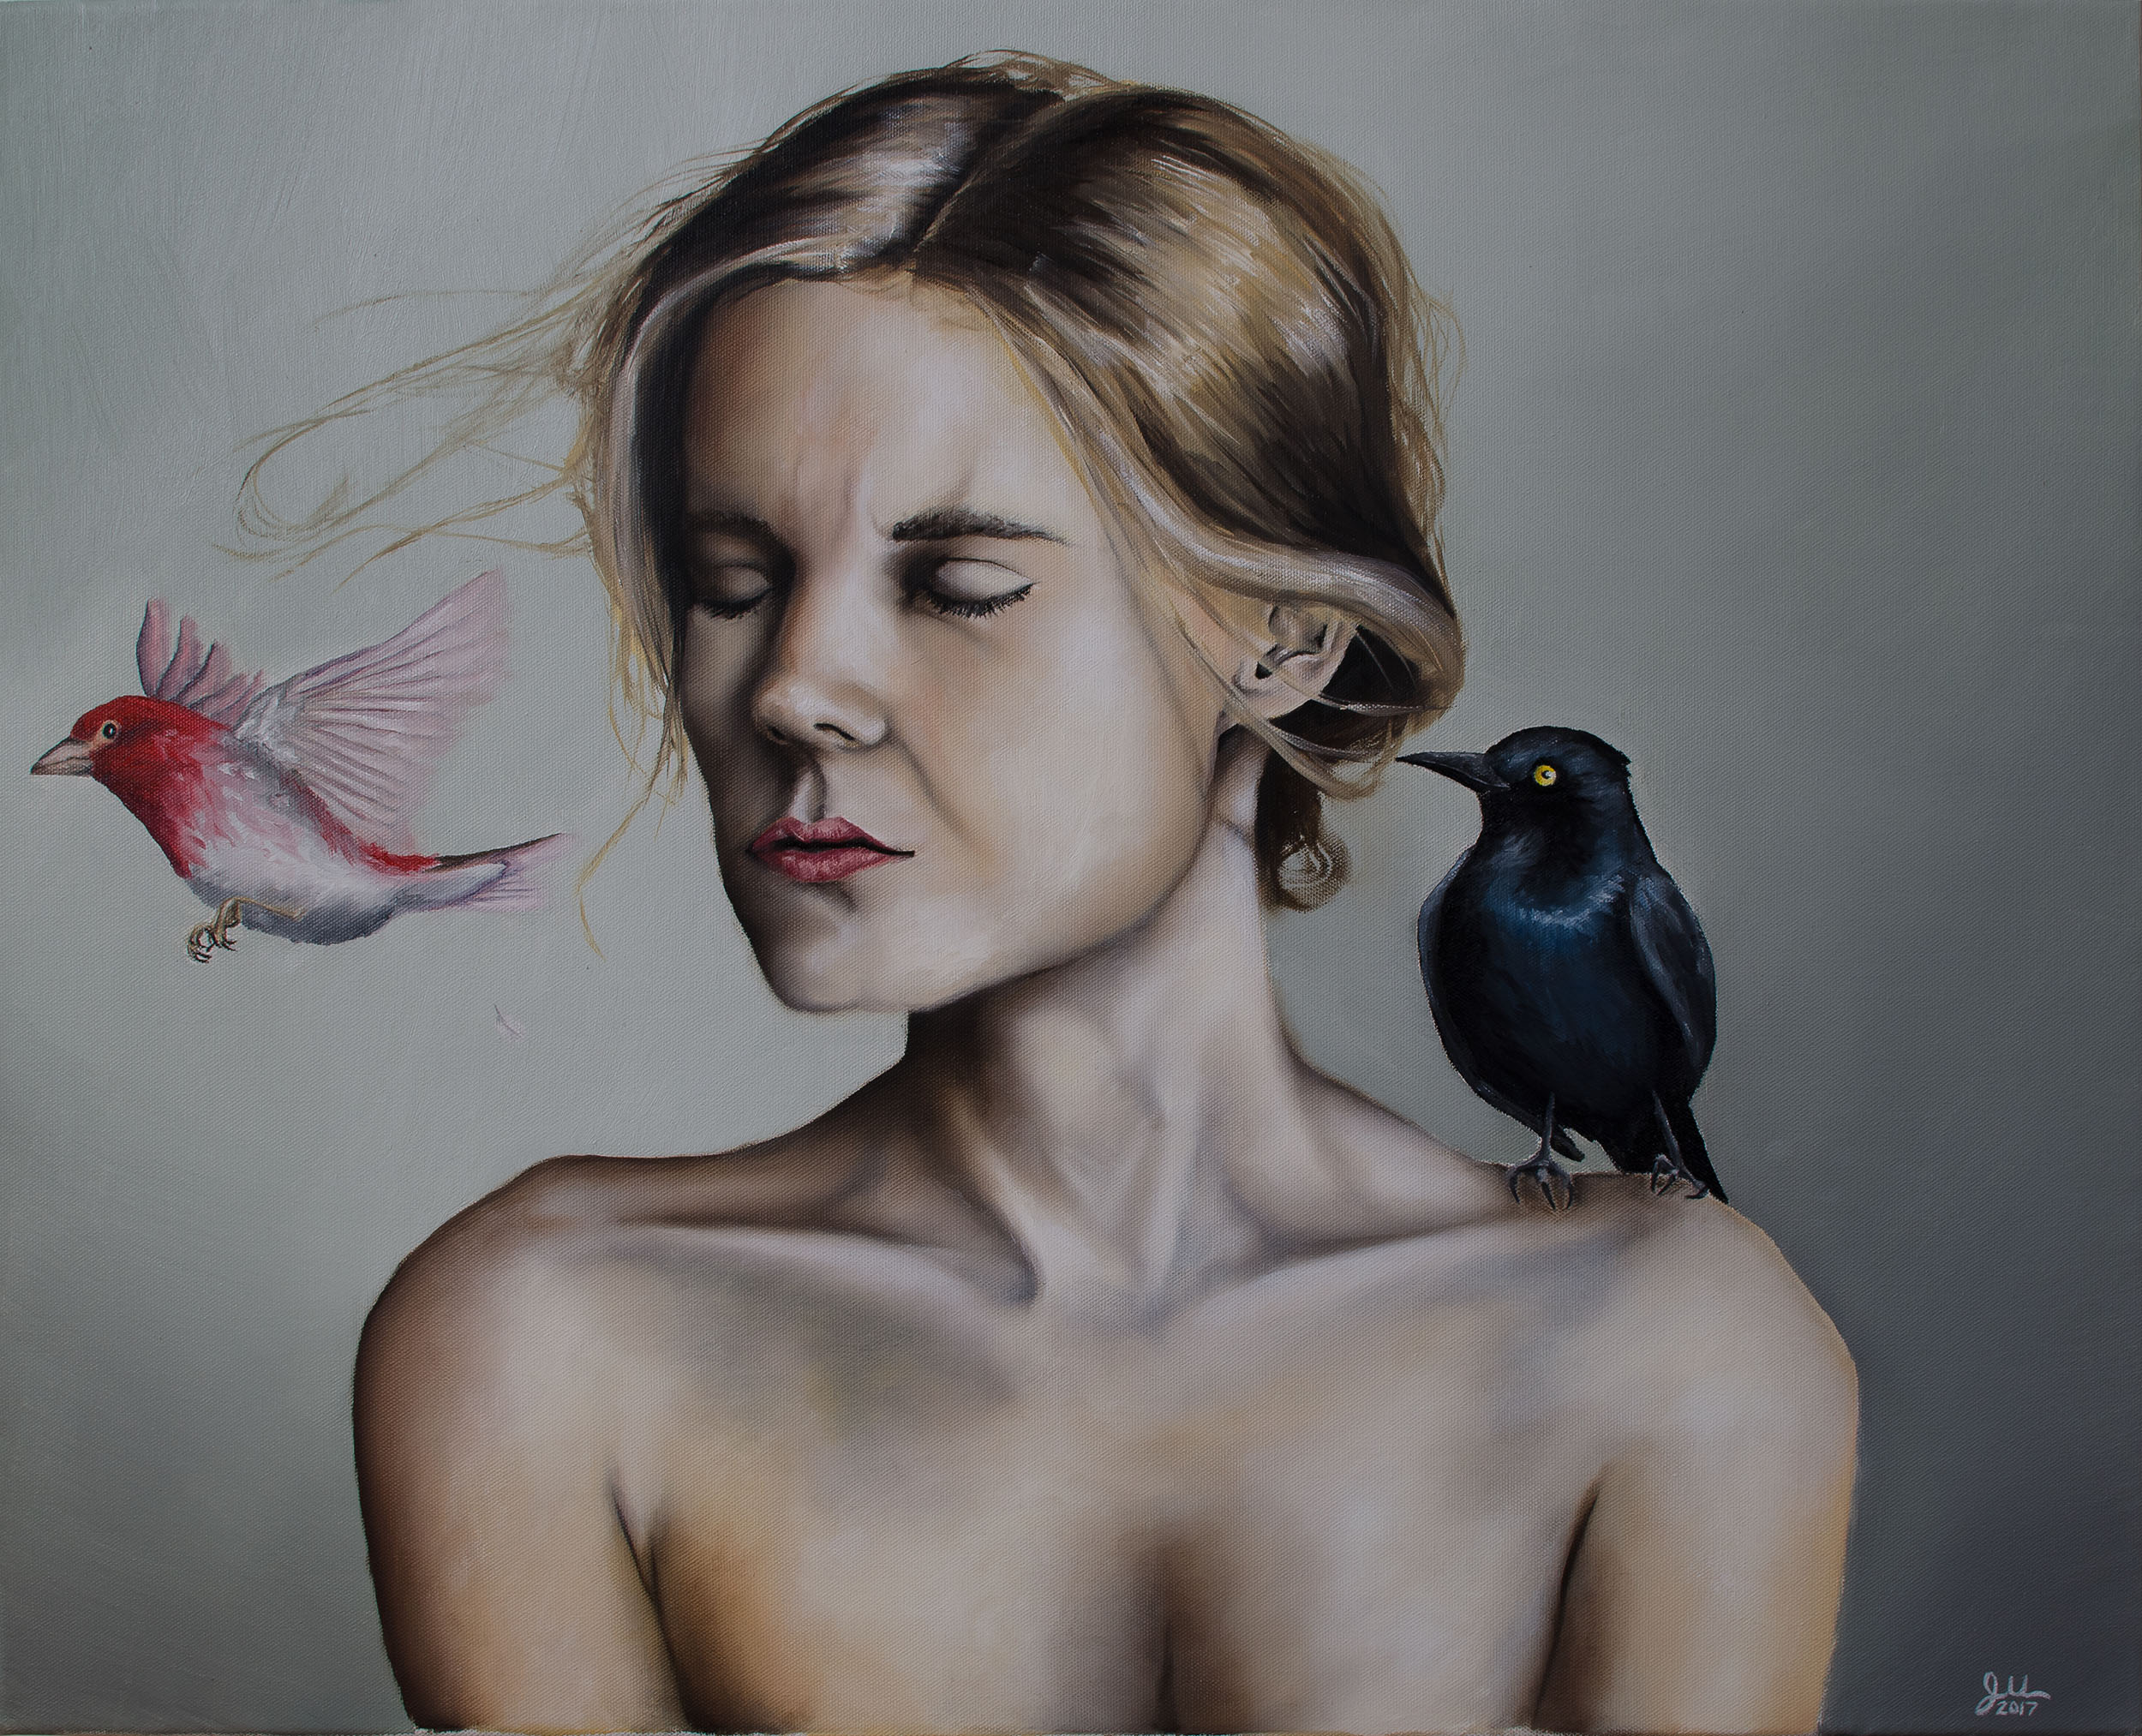 """BLACKBIRD   Oil on canvas, 24x30"""", 2017 (Private collection)  Selection for the 2017 Annual Juried Exhibition, MacRostie Art Center, Grand Rapids, MN"""